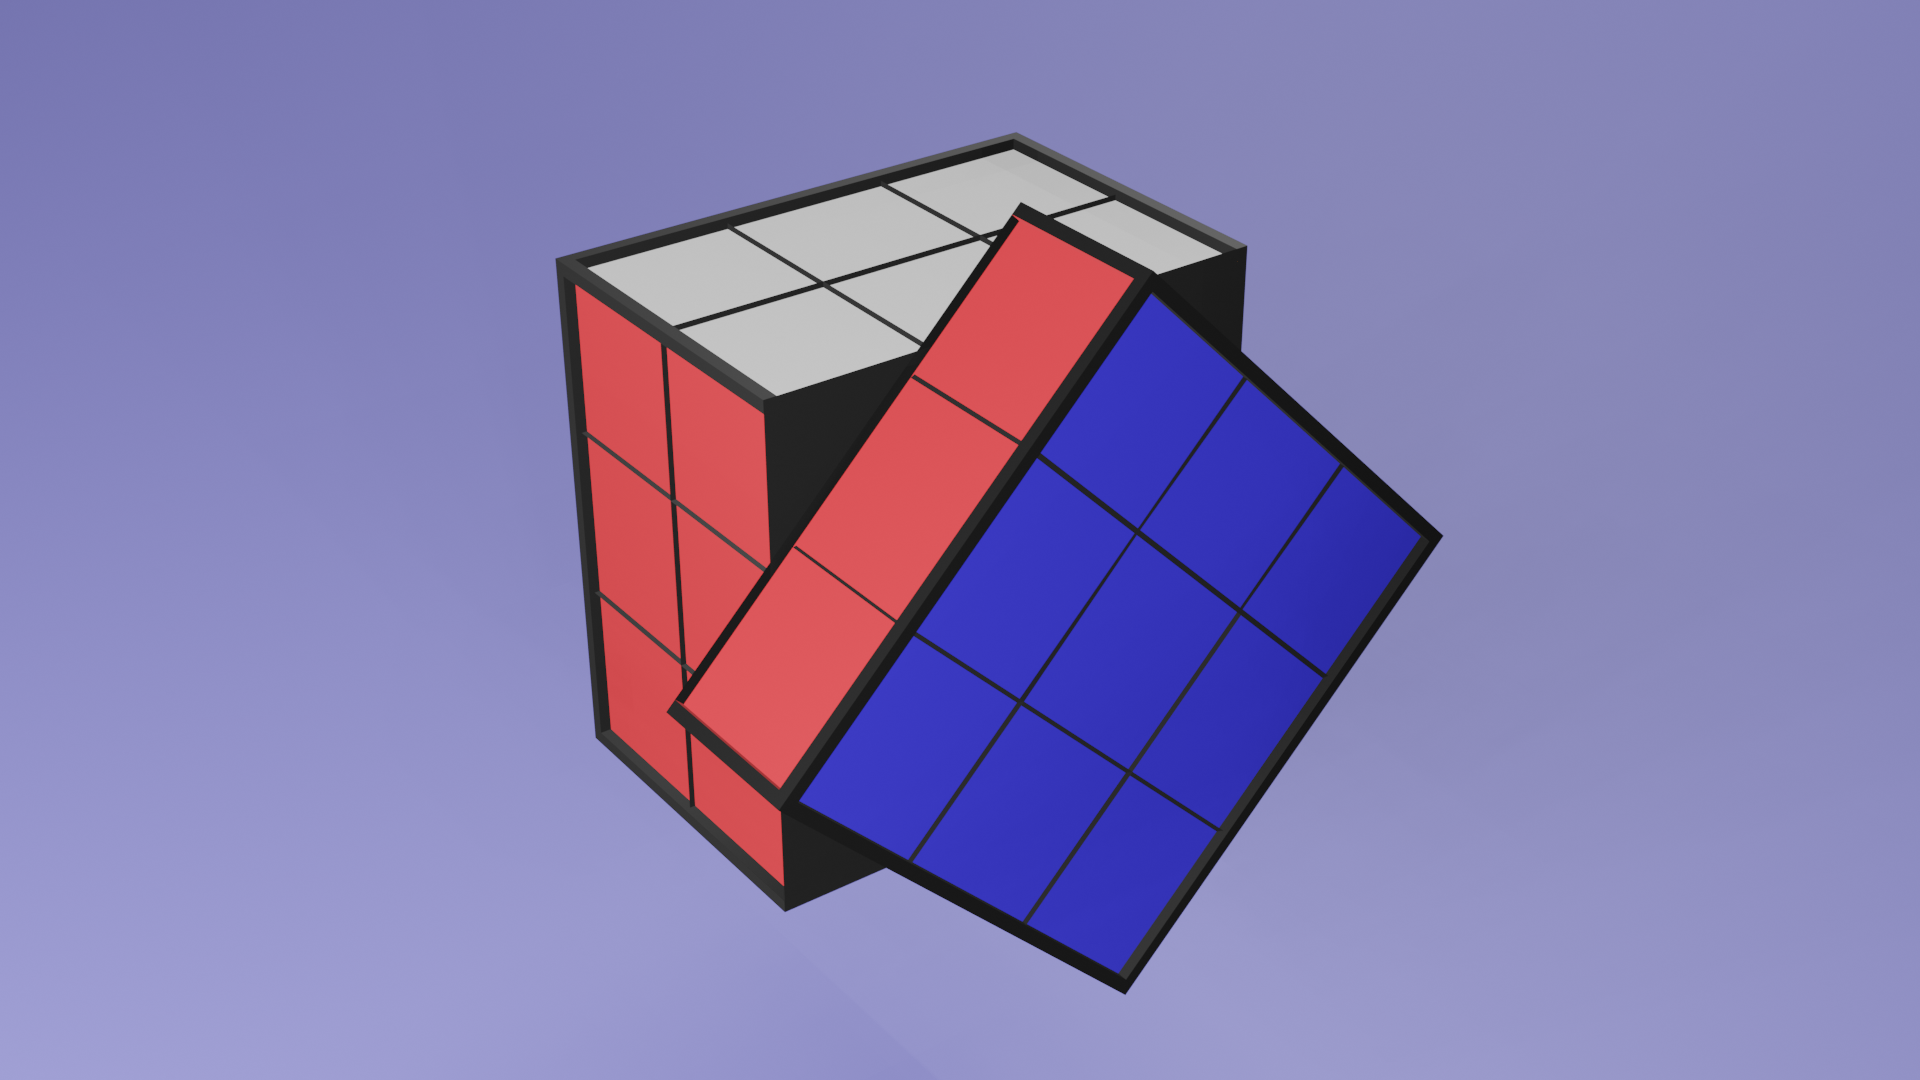 Real-Size 3x3 Rubik's Cube preview image 1